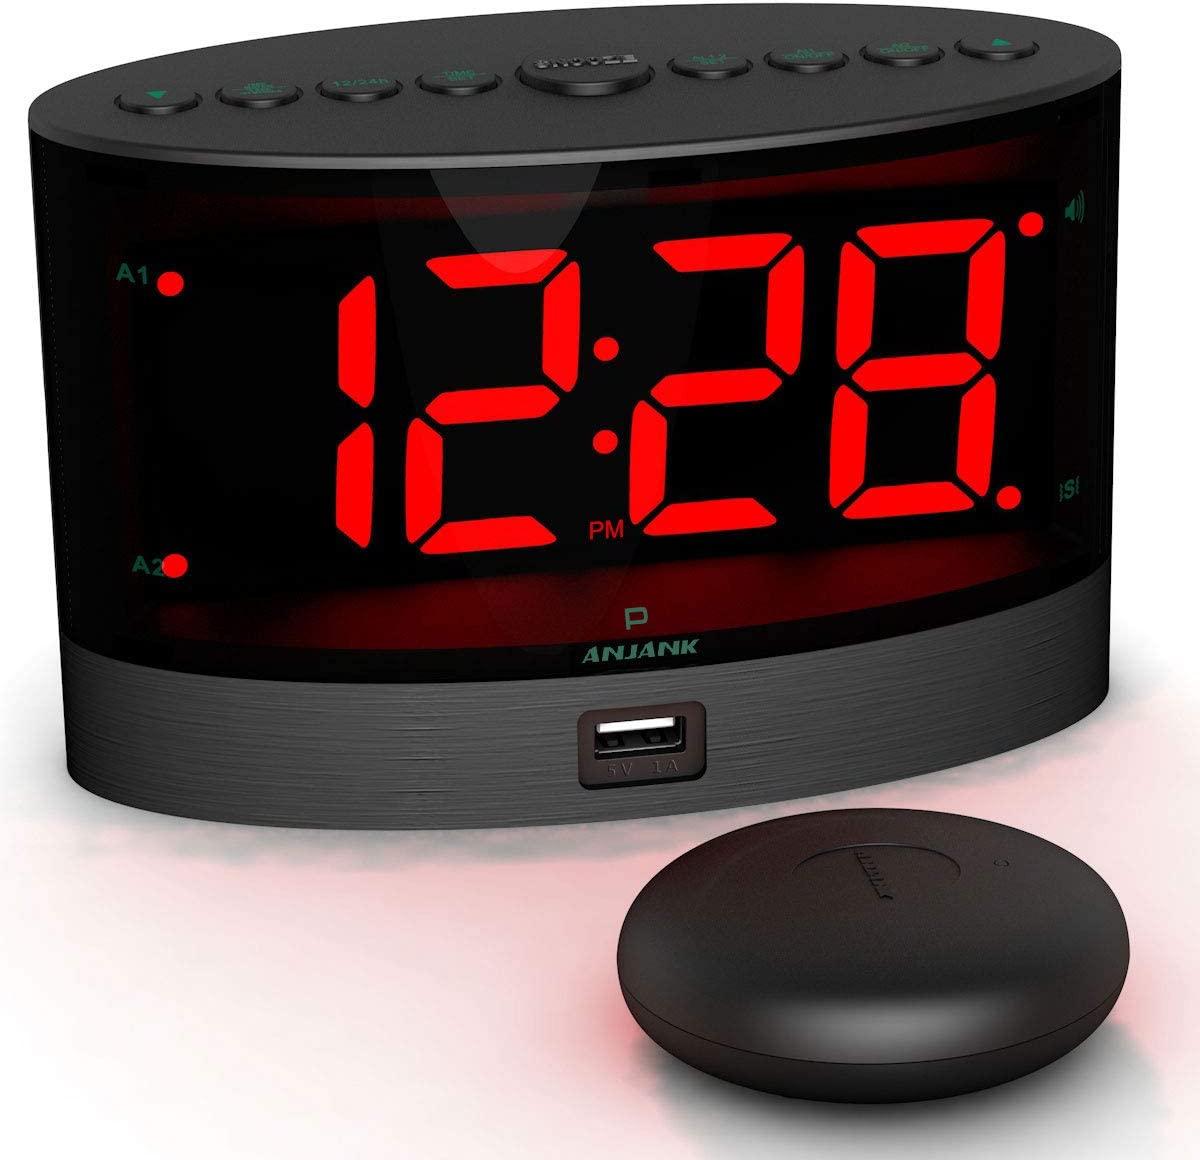 ANJANK Loud Alarm Clock with Wireless Bed Shaker, Powerful Vibrating Alarm Clock for Heavy Sleepers and Hard of Hearing, Large Number Display with Dimmer, Dual Alarm USB Charger Port for Bedroom